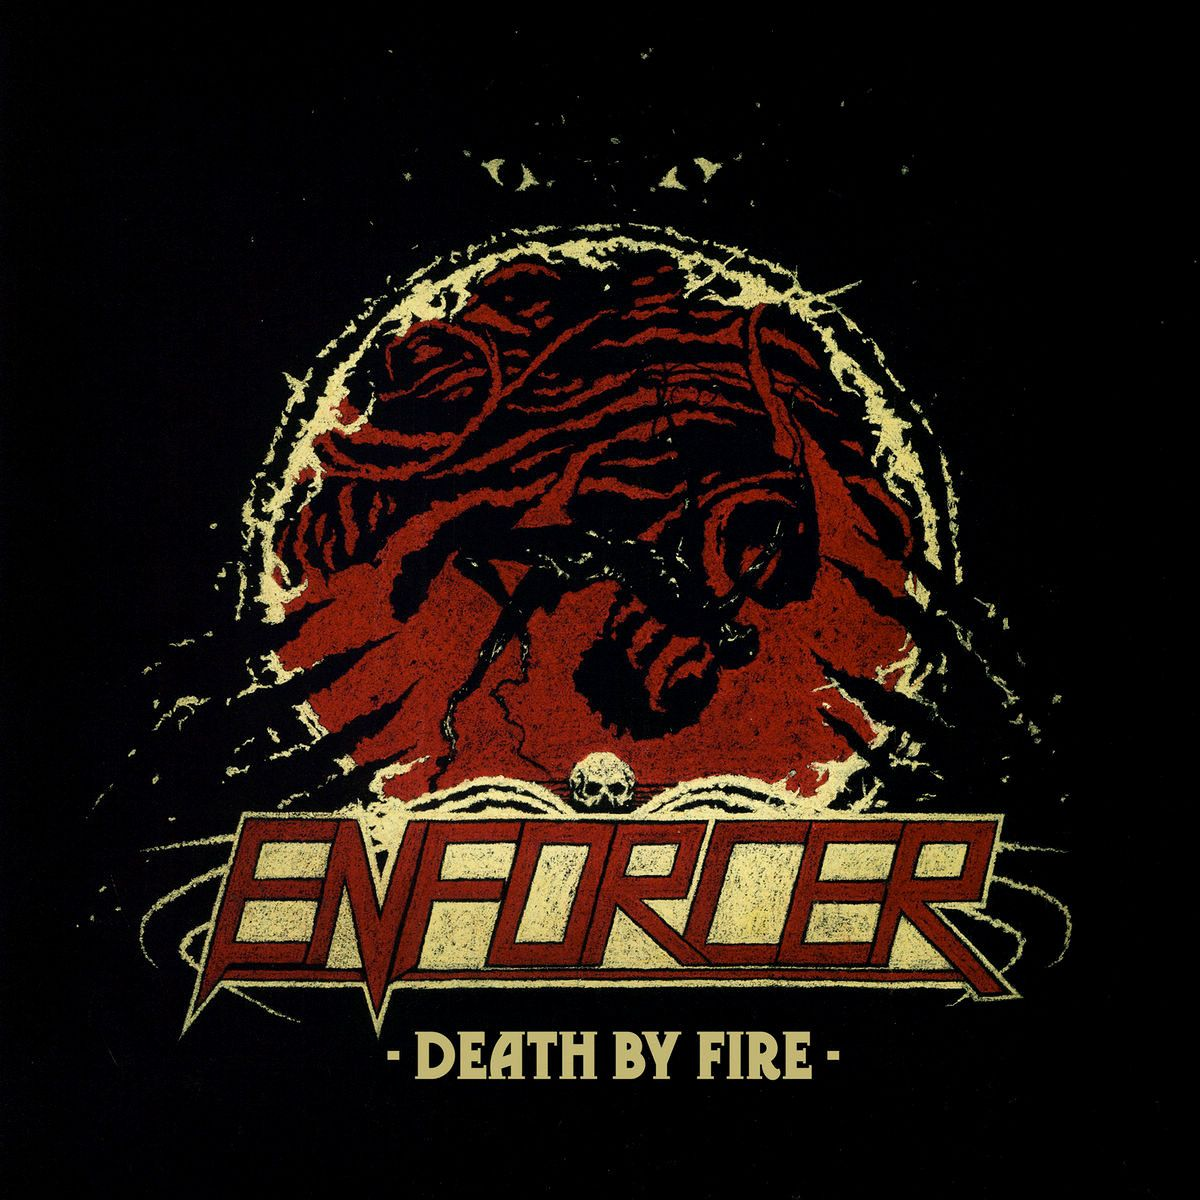 Enforcer - Death By Fire album cover